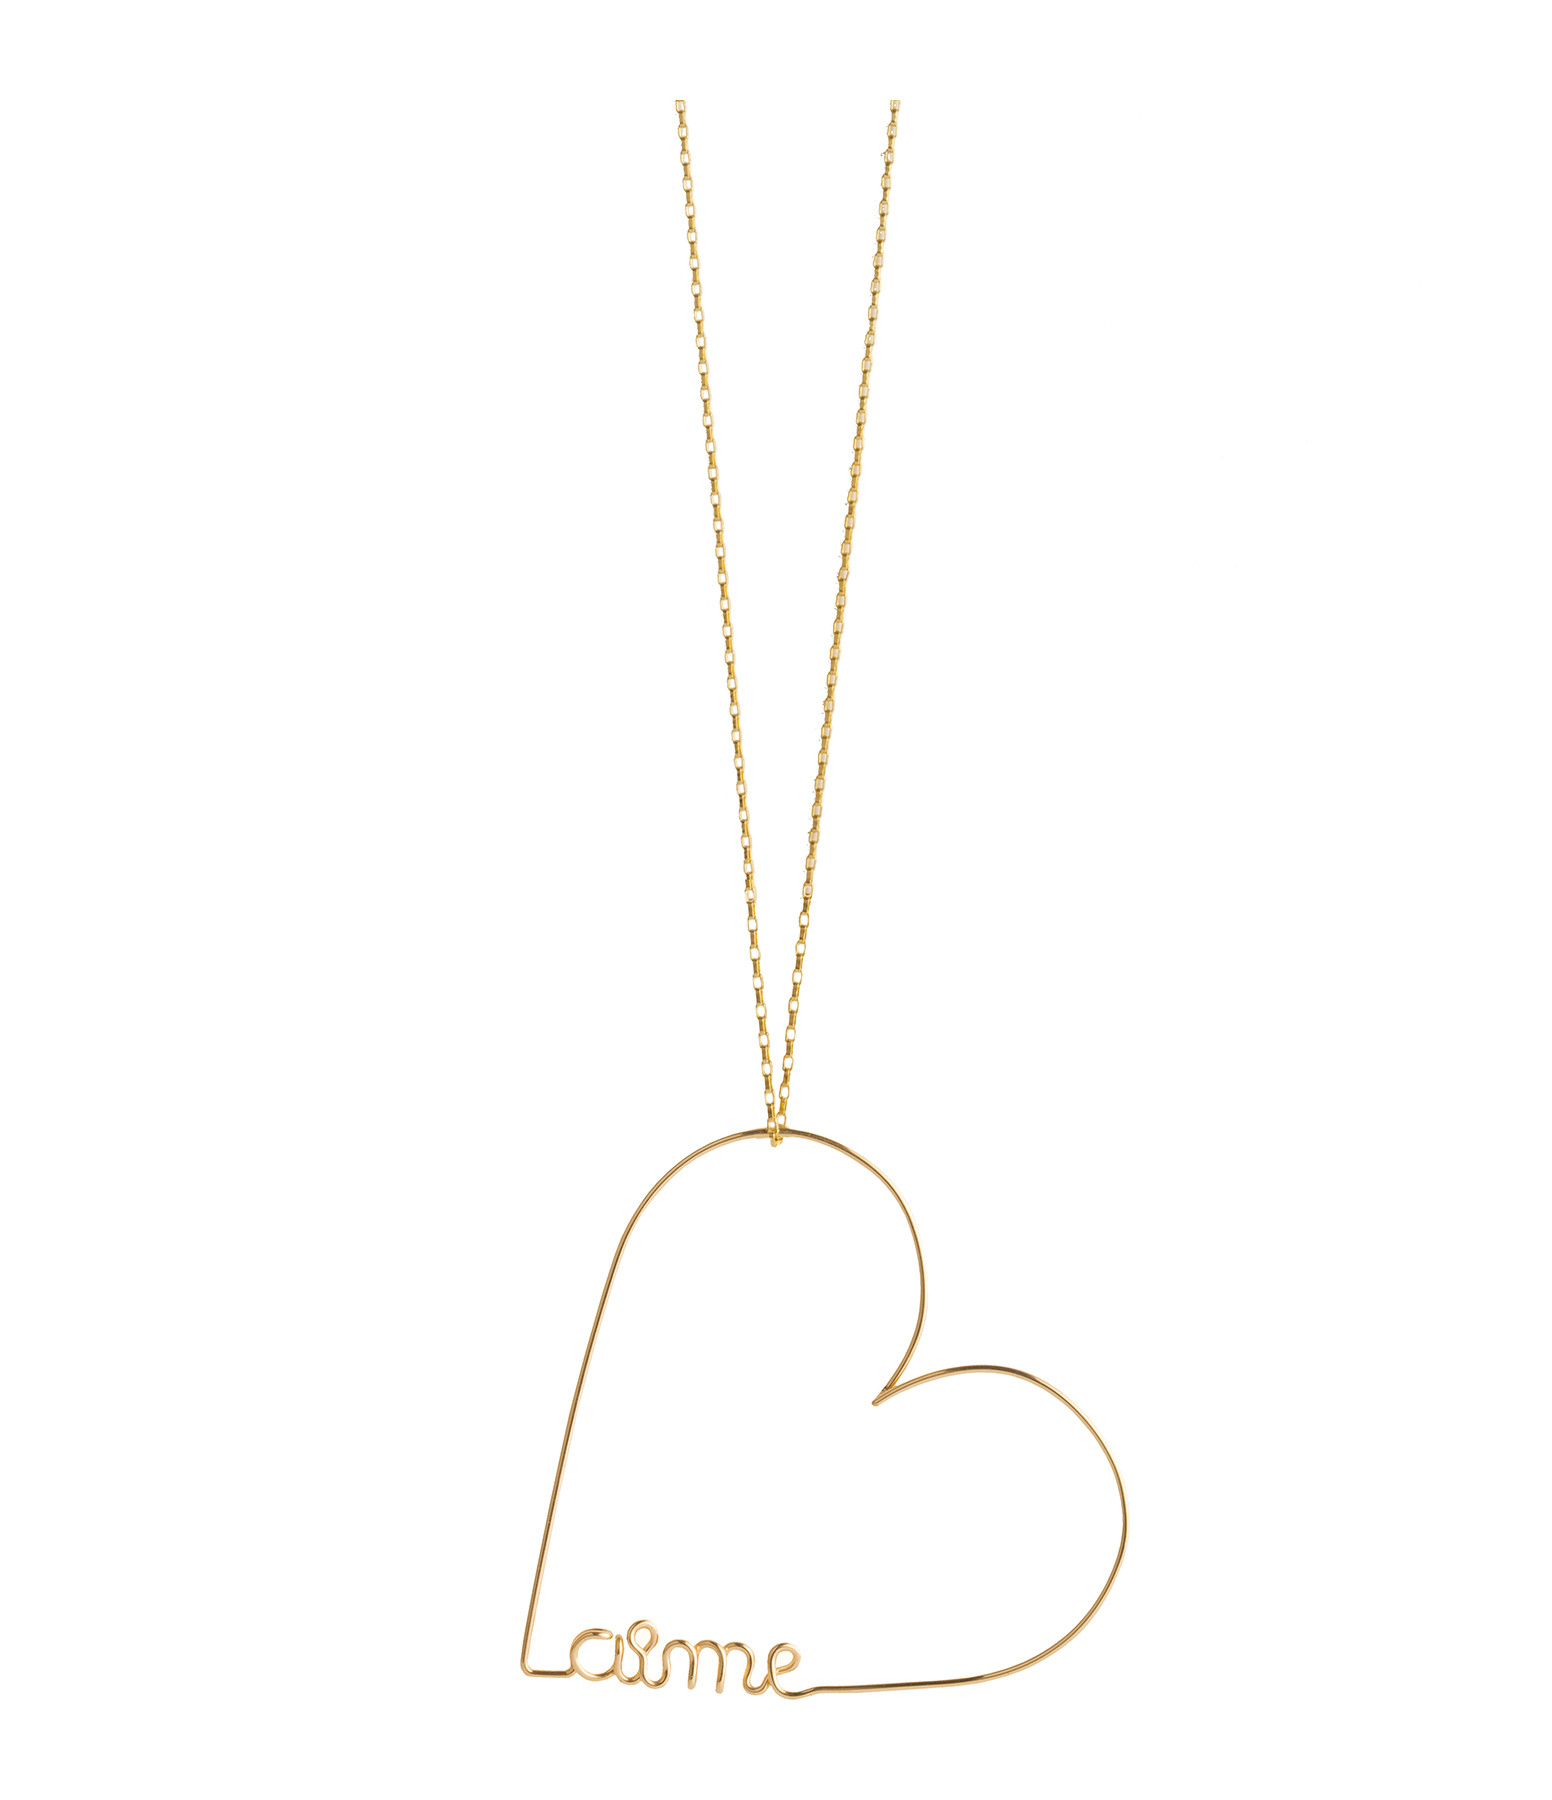 ATELIER PAULIN - Collier Mini Coeur Aime Gold Filled 14K